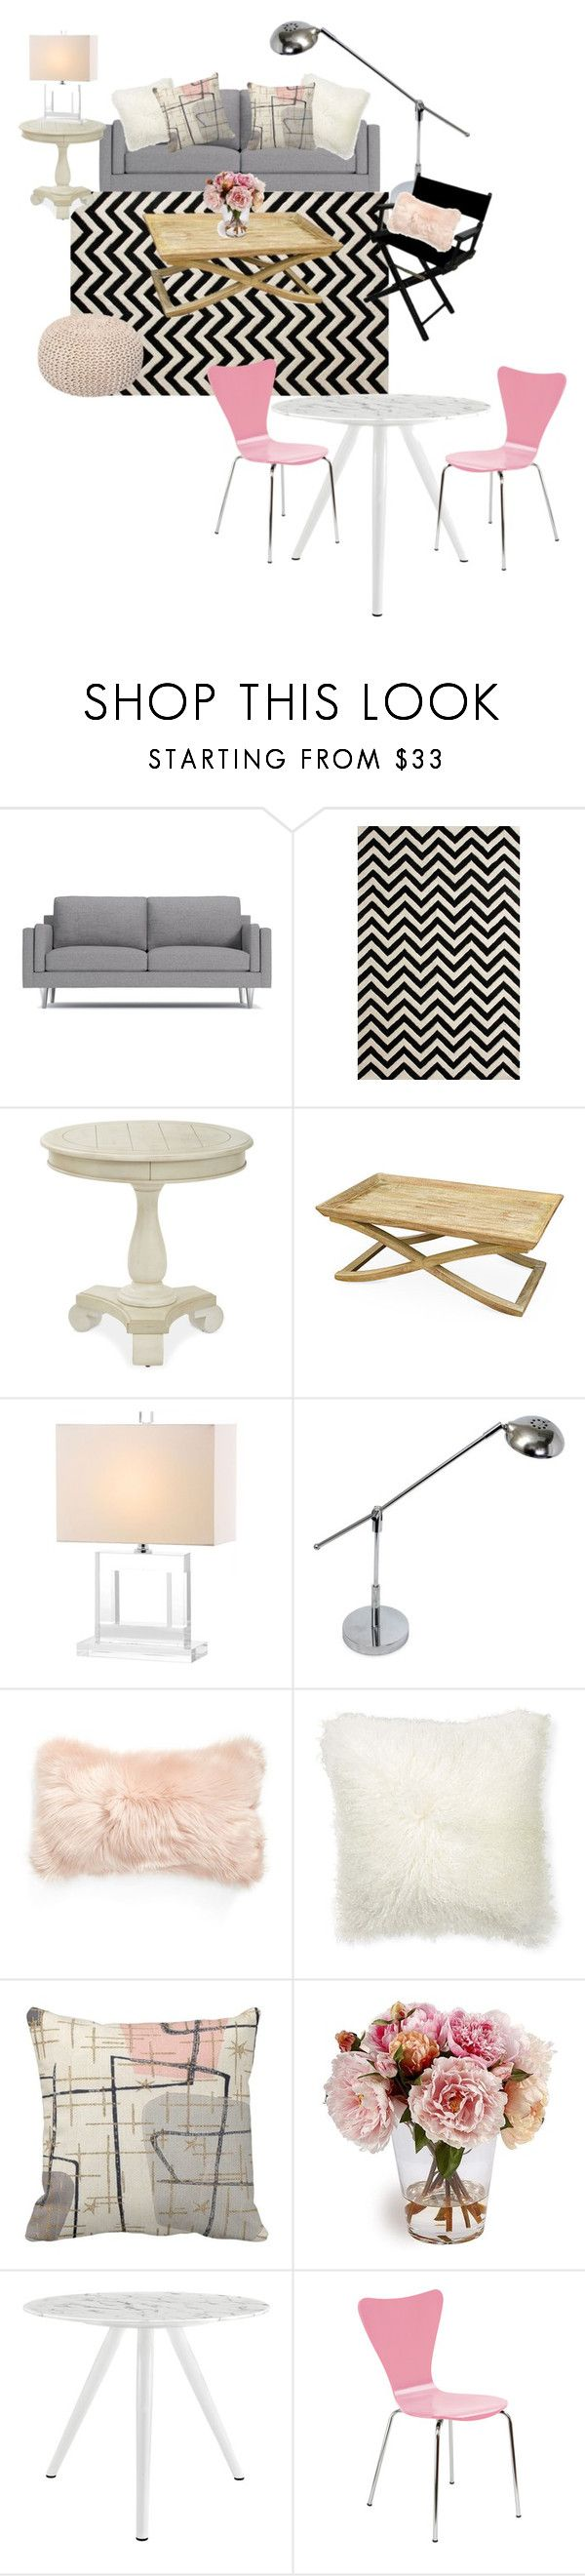 Living/dining by daniele-sing on Polyvore featuring interior, interiors, interior design, home, home decor, interior decorating, Legaré, West Elm, Simple Designs and nuLOOM